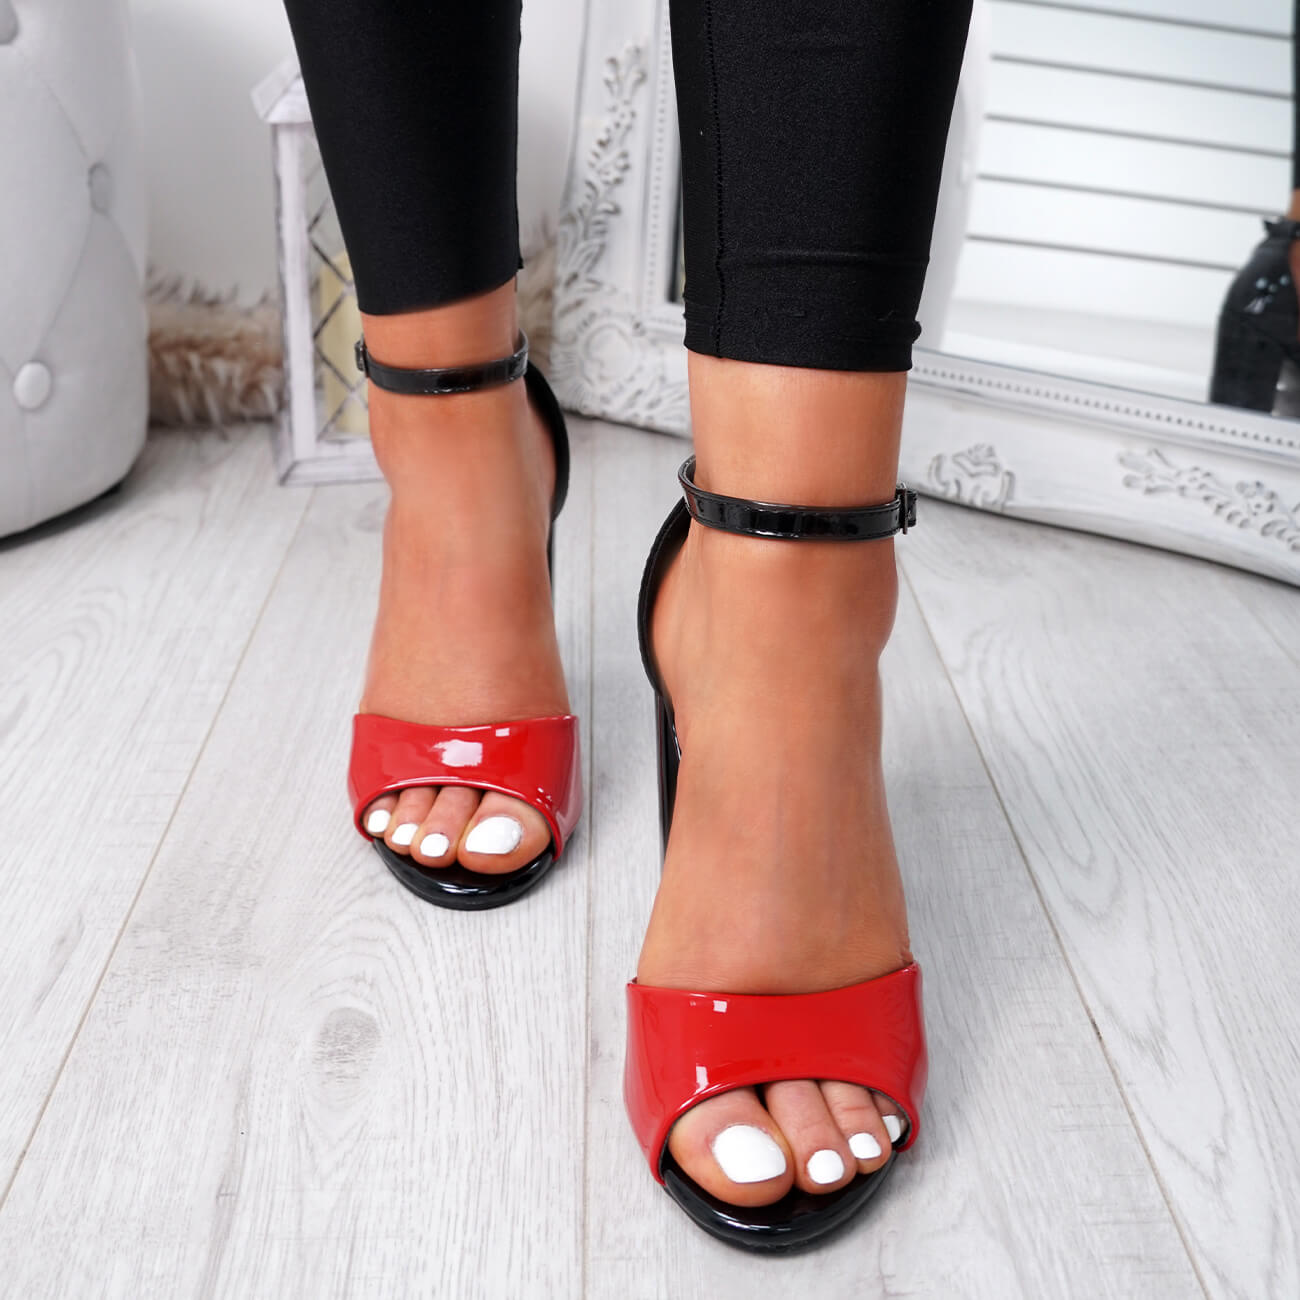 WOMENS-LADIES-ANKLE-STRAP-HIGH-BLOCK-HEEL-SANDALS-PEEP-TOE-OFFICE-CASUAL-SHOES thumbnail 22